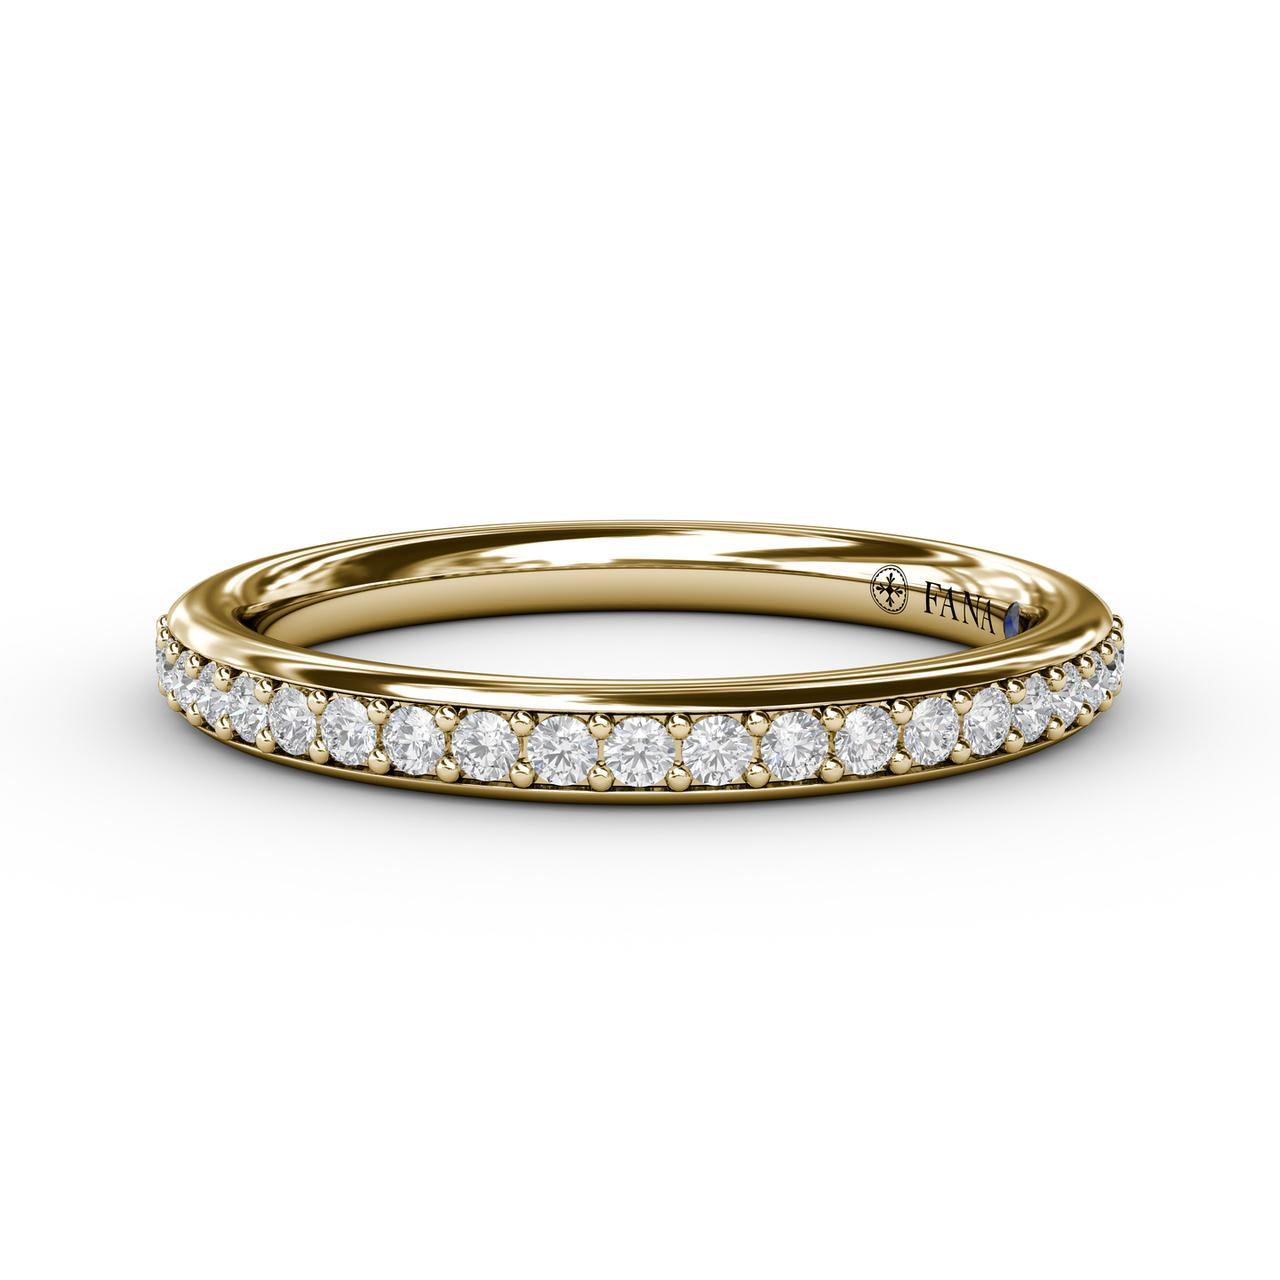 Women's Wedding Bands - Diamond Wedding Band - image 3